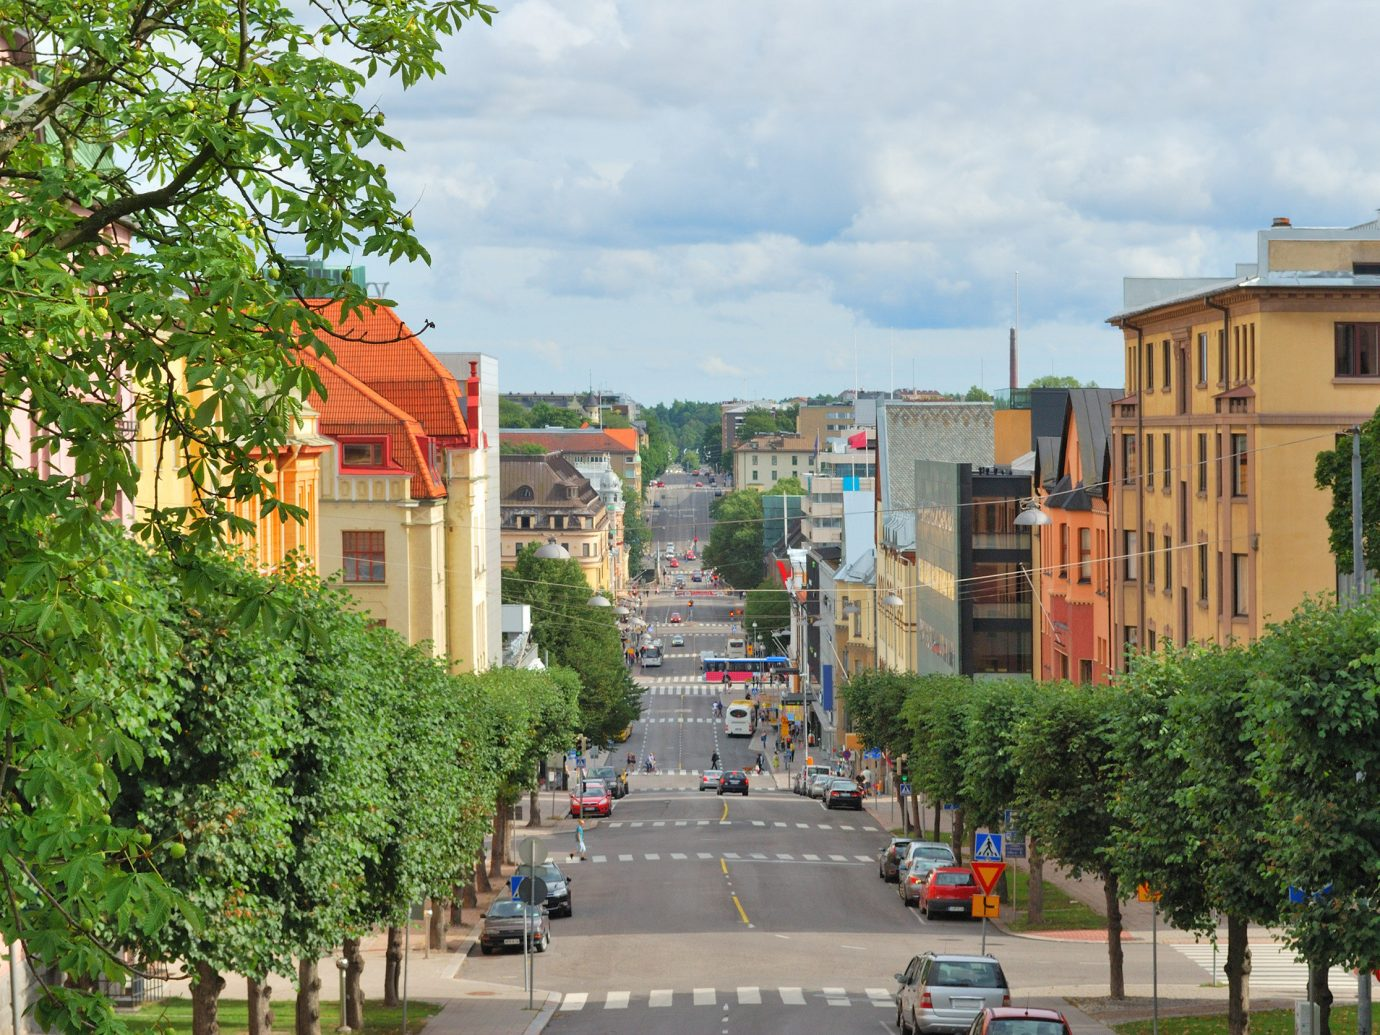 Finland Trip Ideas tree outdoor sky City urban area neighbourhood Town street metropolitan area plant residential area Downtown road real estate metropolis house lane light plaza suburb way recreation lined day